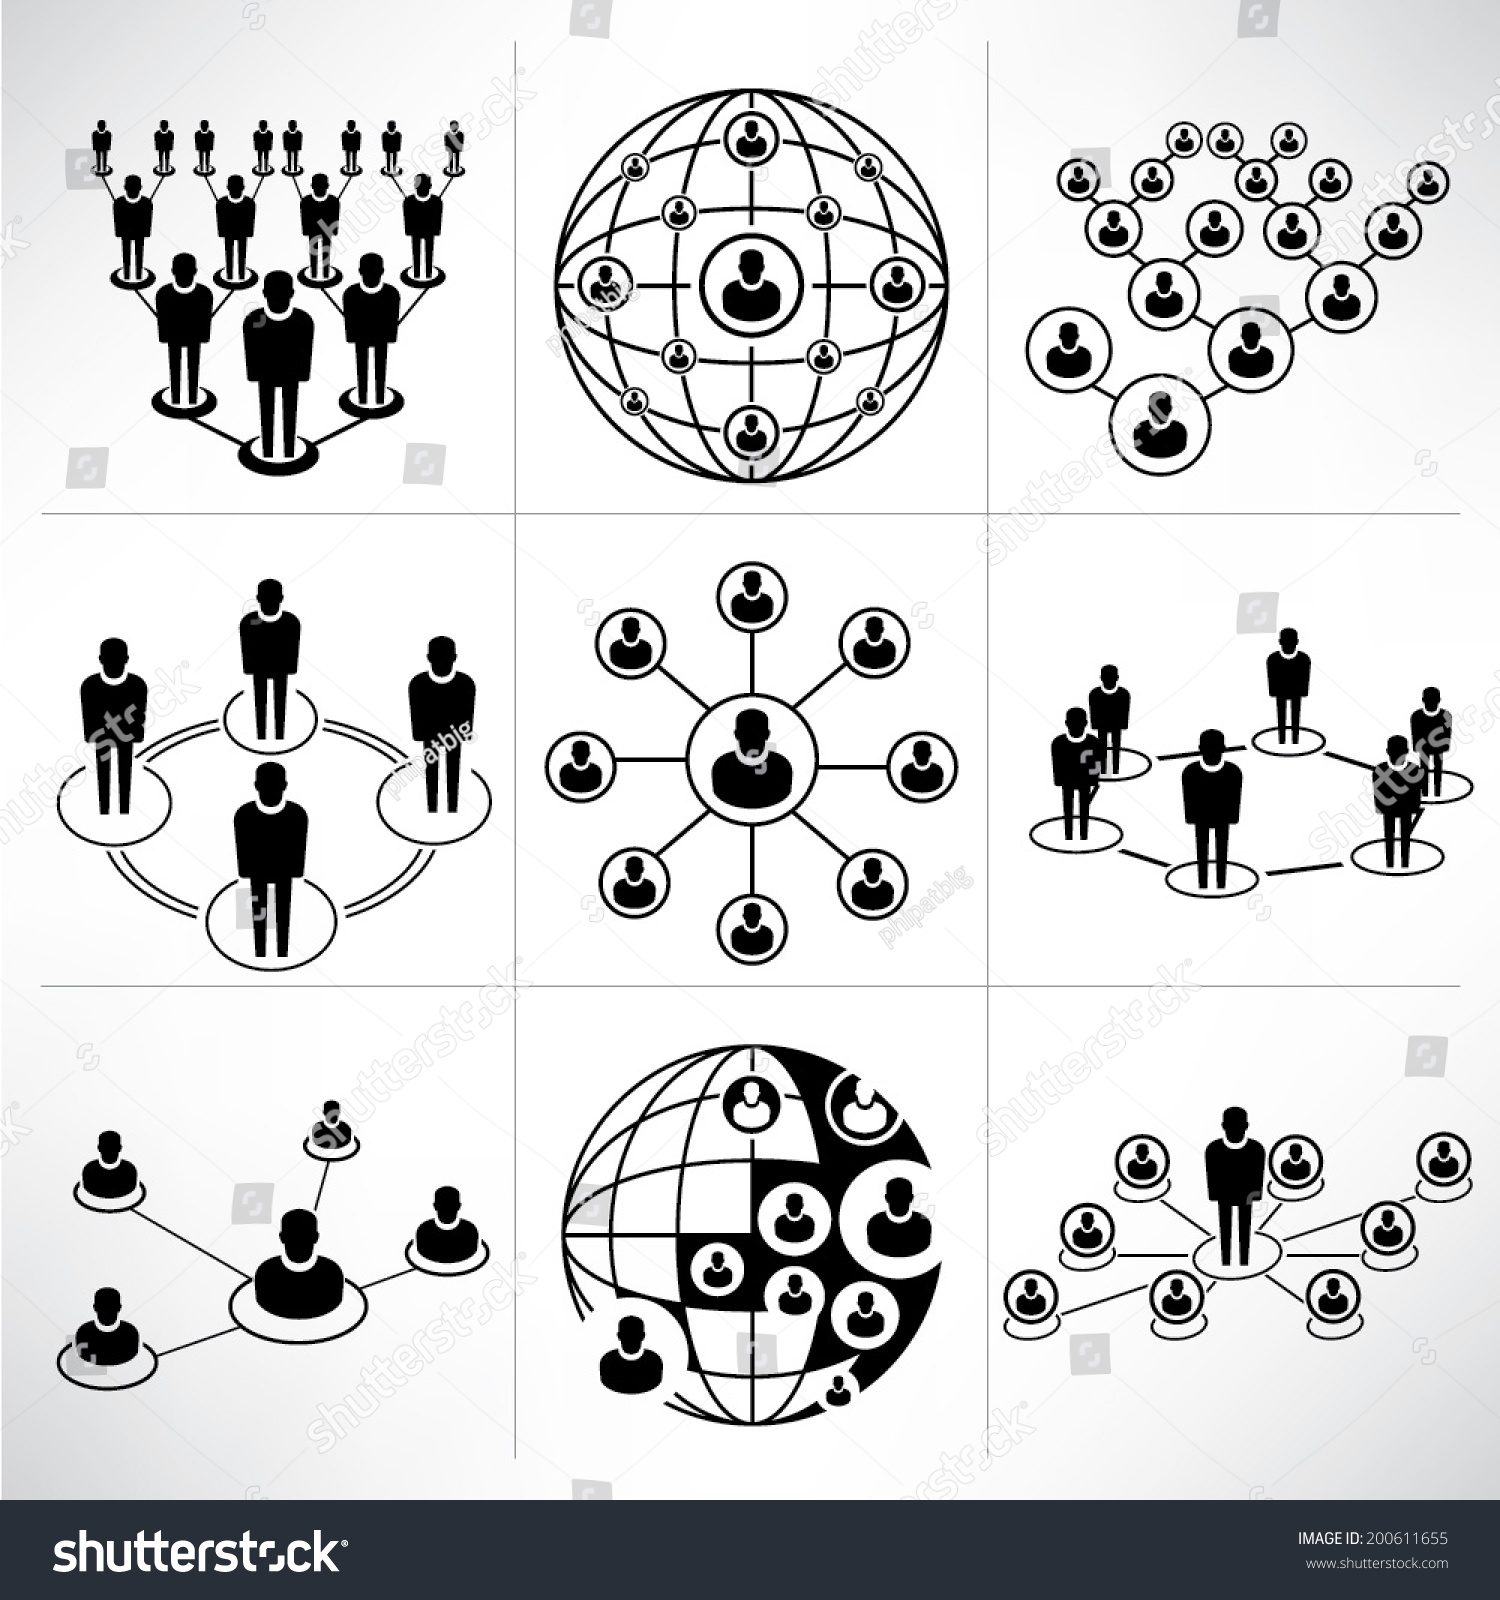 People Network Icons Set People Connection Stock Vector ...